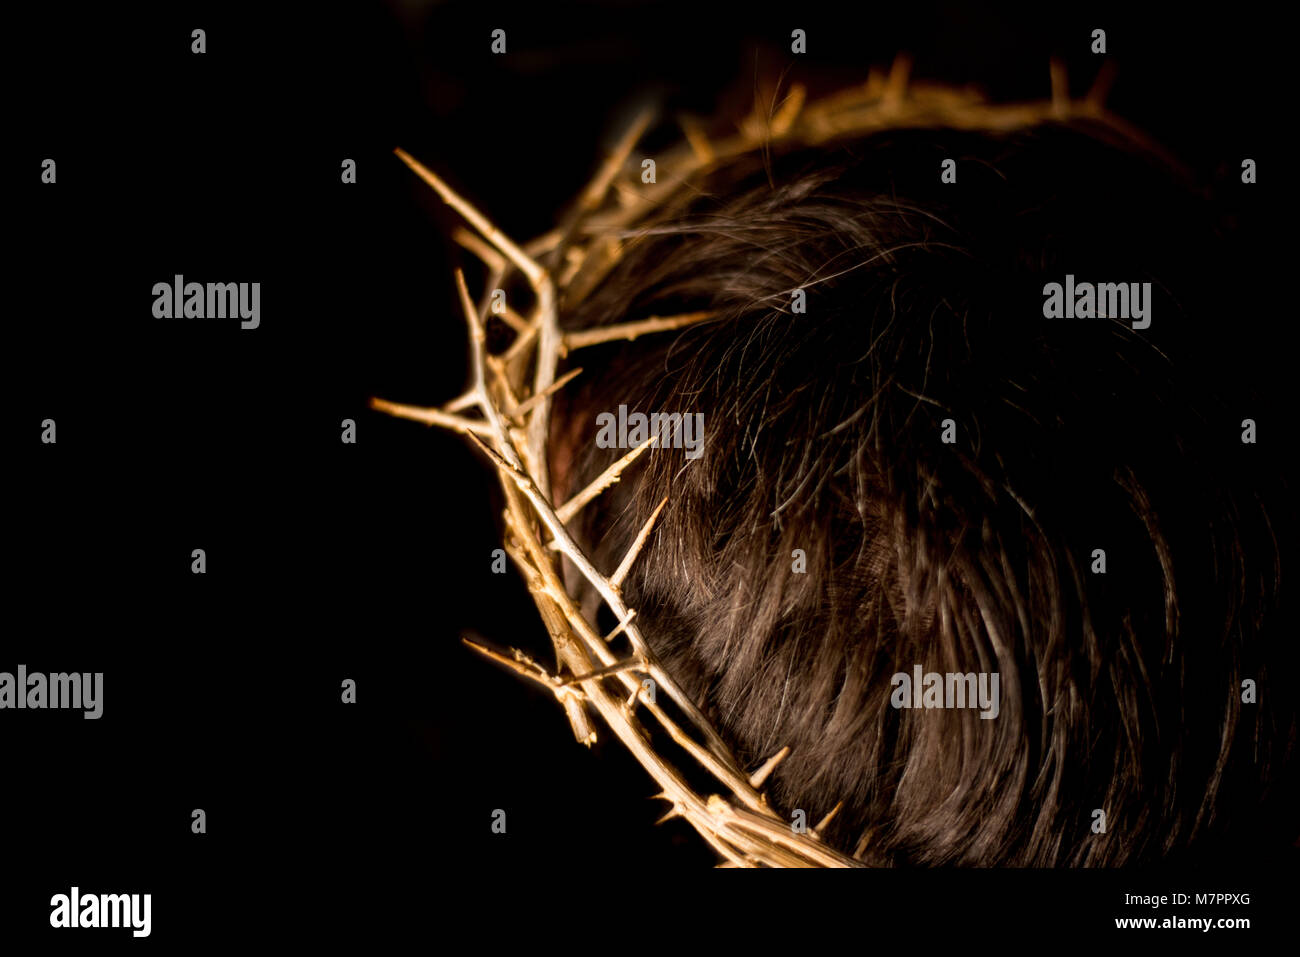 A crown of thorns on a head to represent Jesus Christ and Christianity. - Stock Image